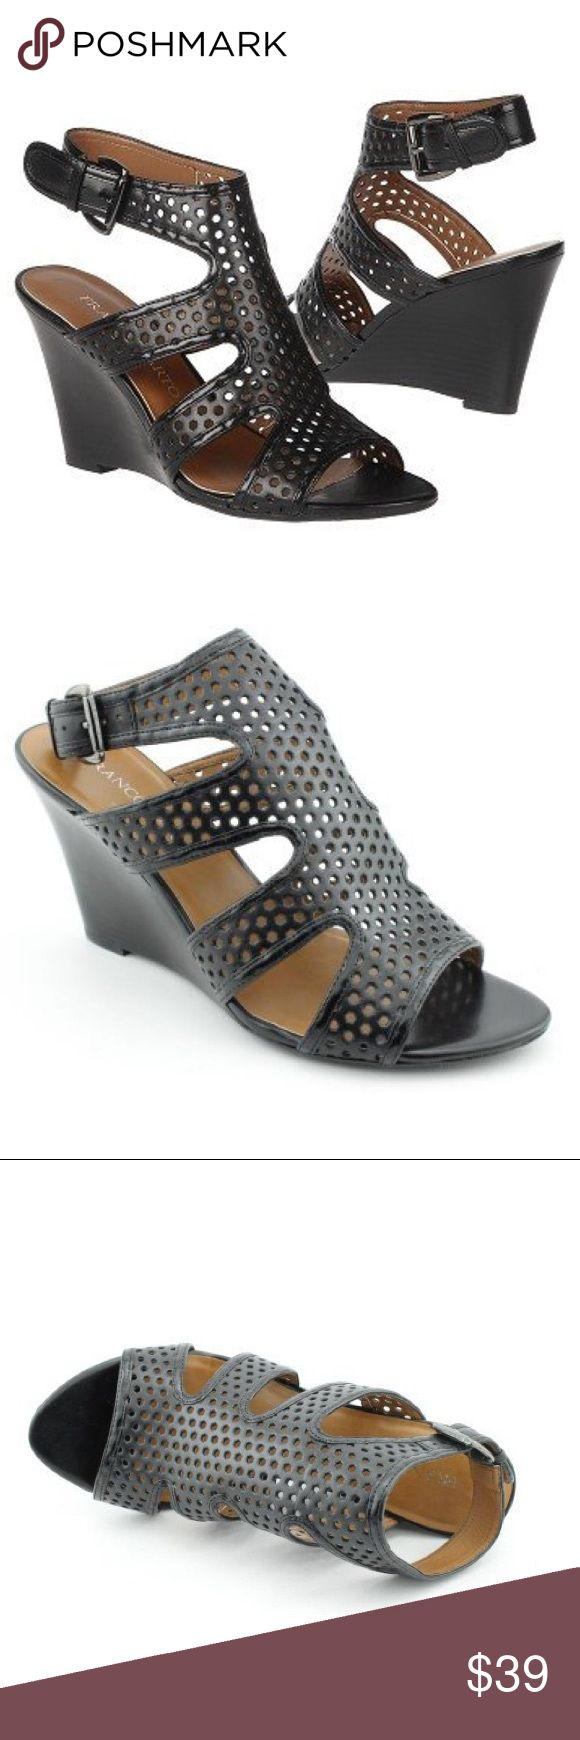 New Philip Sarto Gavel Wedges Franco Sarto offers the Gavel sandal. This sandal features intricate cutout details and a wedge heel. Leather.  Features Wedge Sandals Ankle strap Open toe Cutout Franco Sarto Shoes Wedges